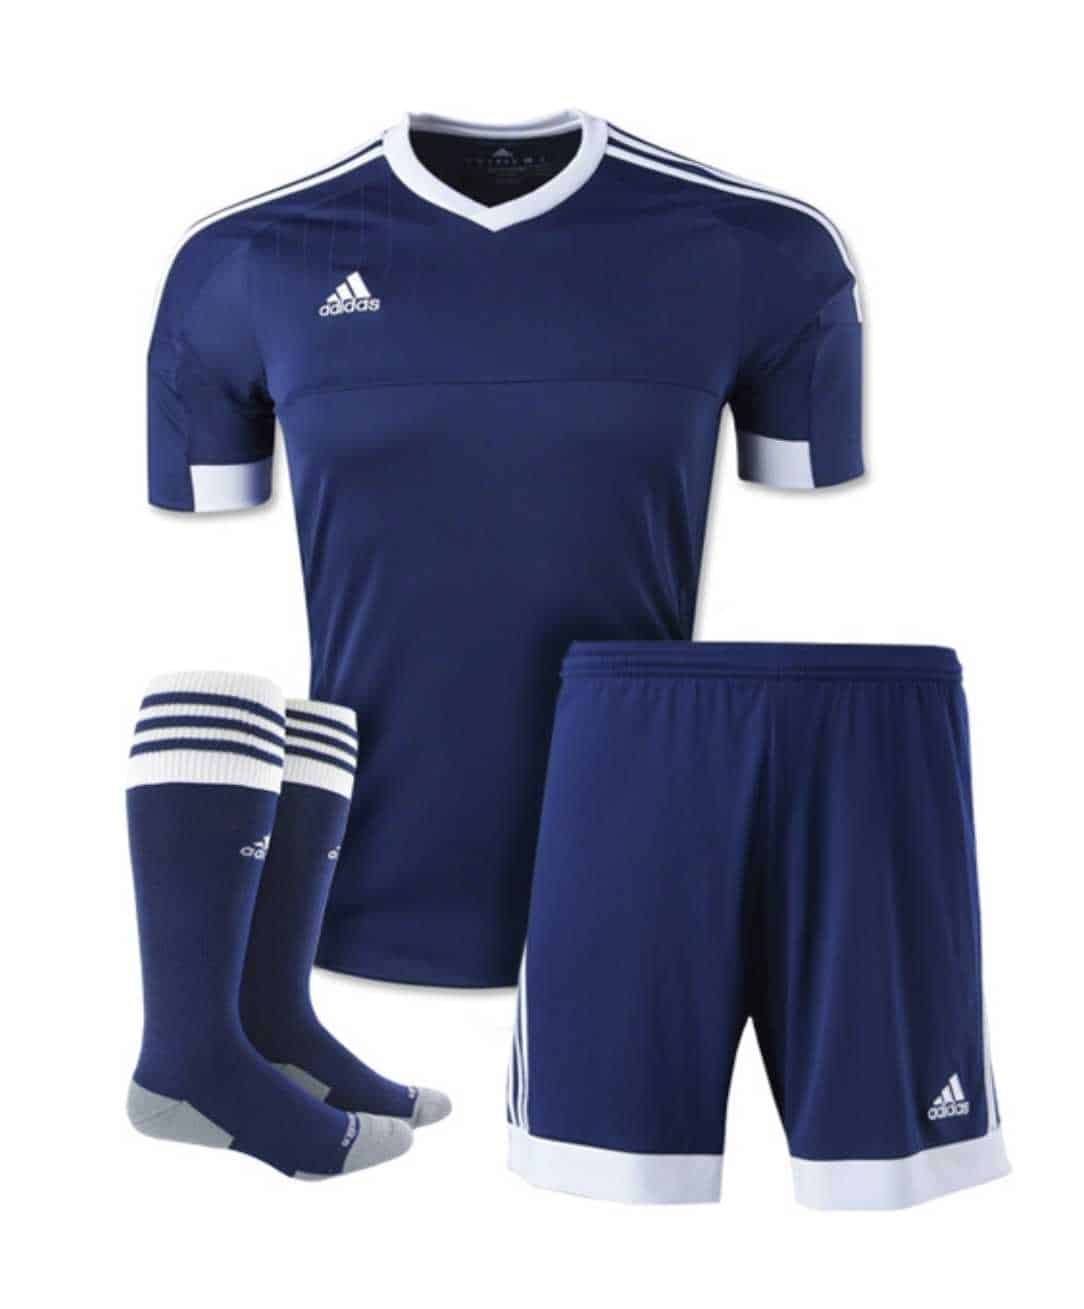 adidas Tiro 15 DryDye Soccer Uniform, The Team Factory - photo#3